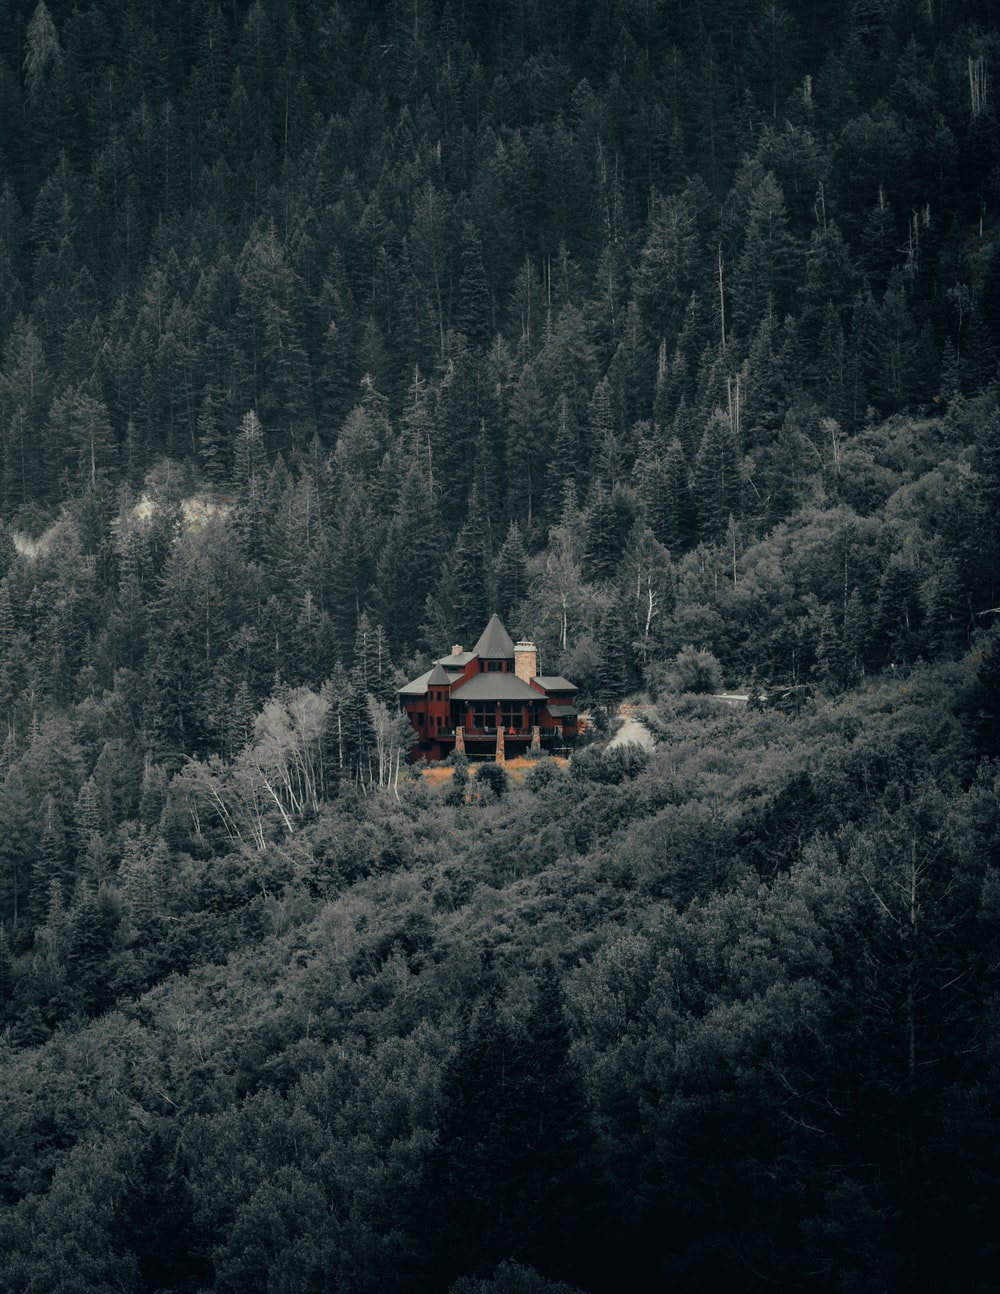 brown wooden house on forest during daytime